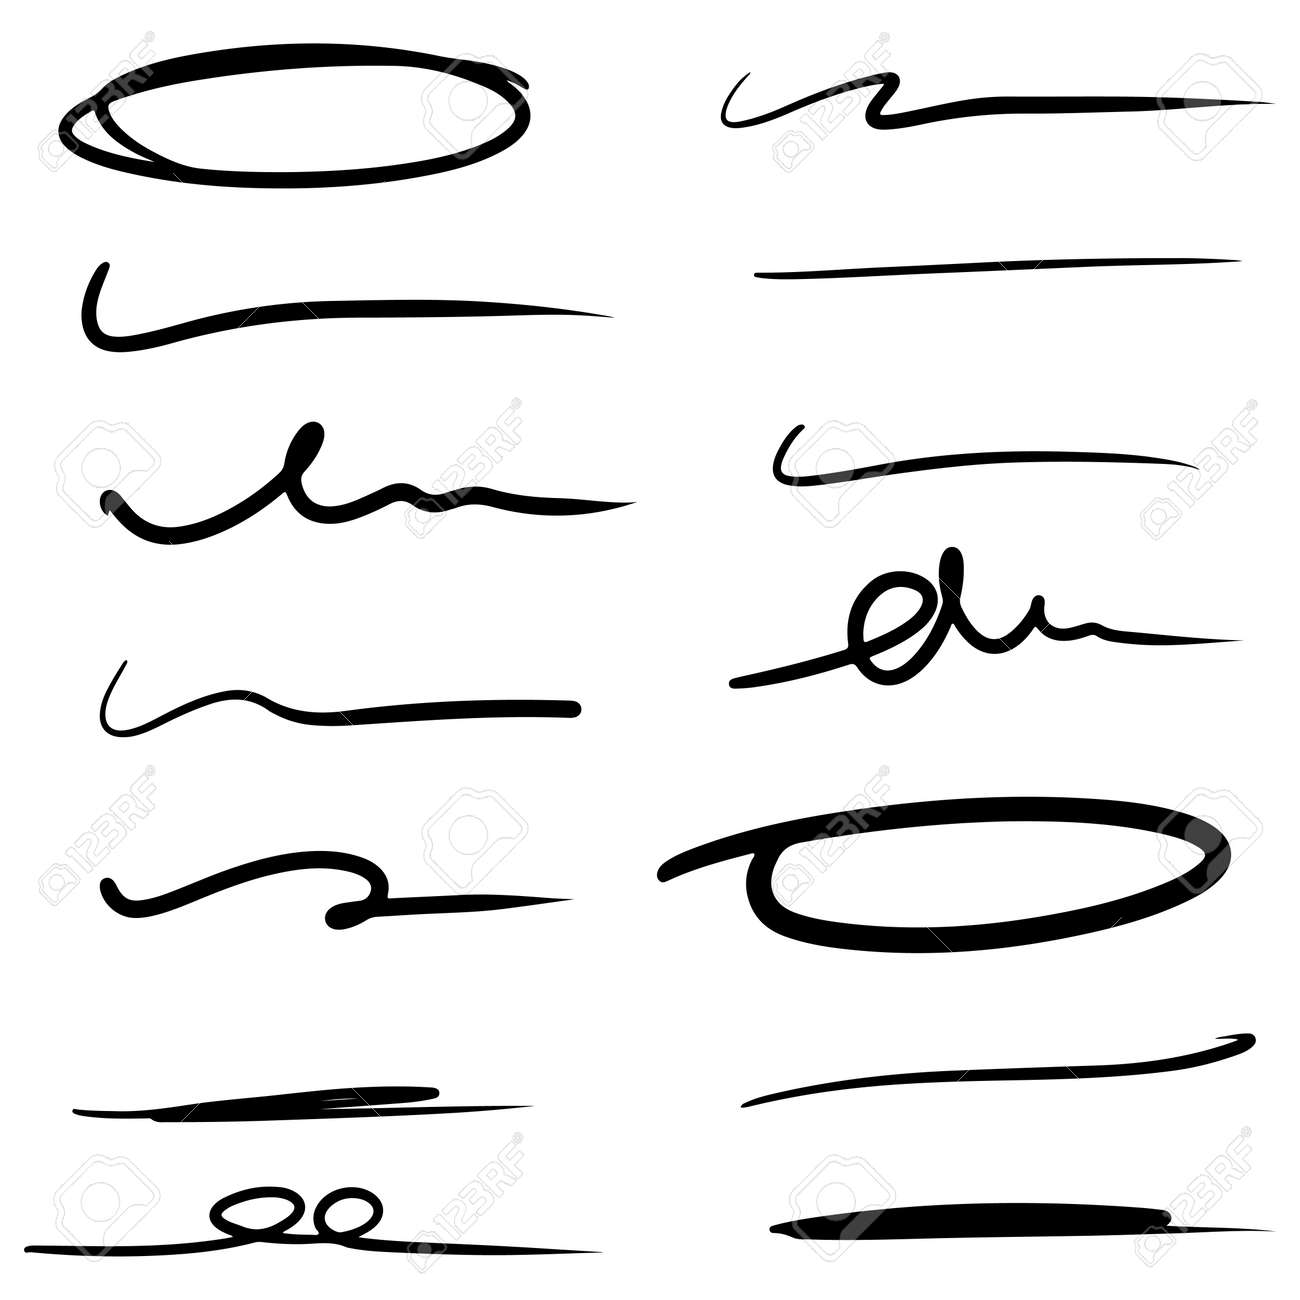 hand drawn line for marking text and circle marker set isolated on white background. vector illustration. - 169834443